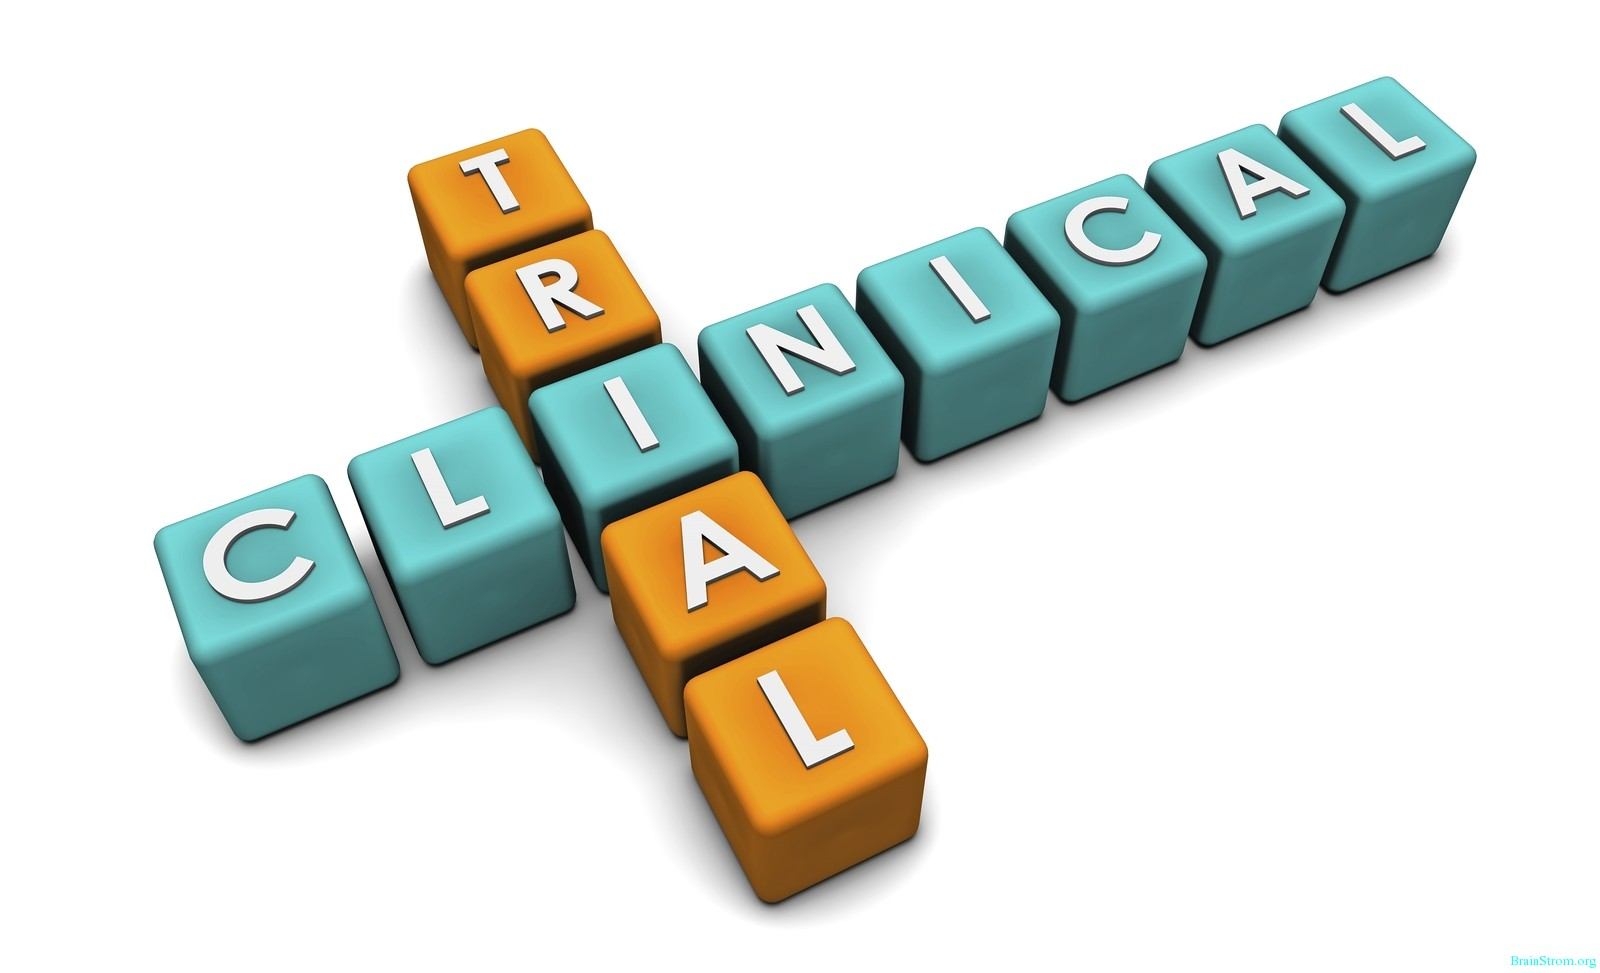 E-tutorial on clinical components for service delivery for marps.